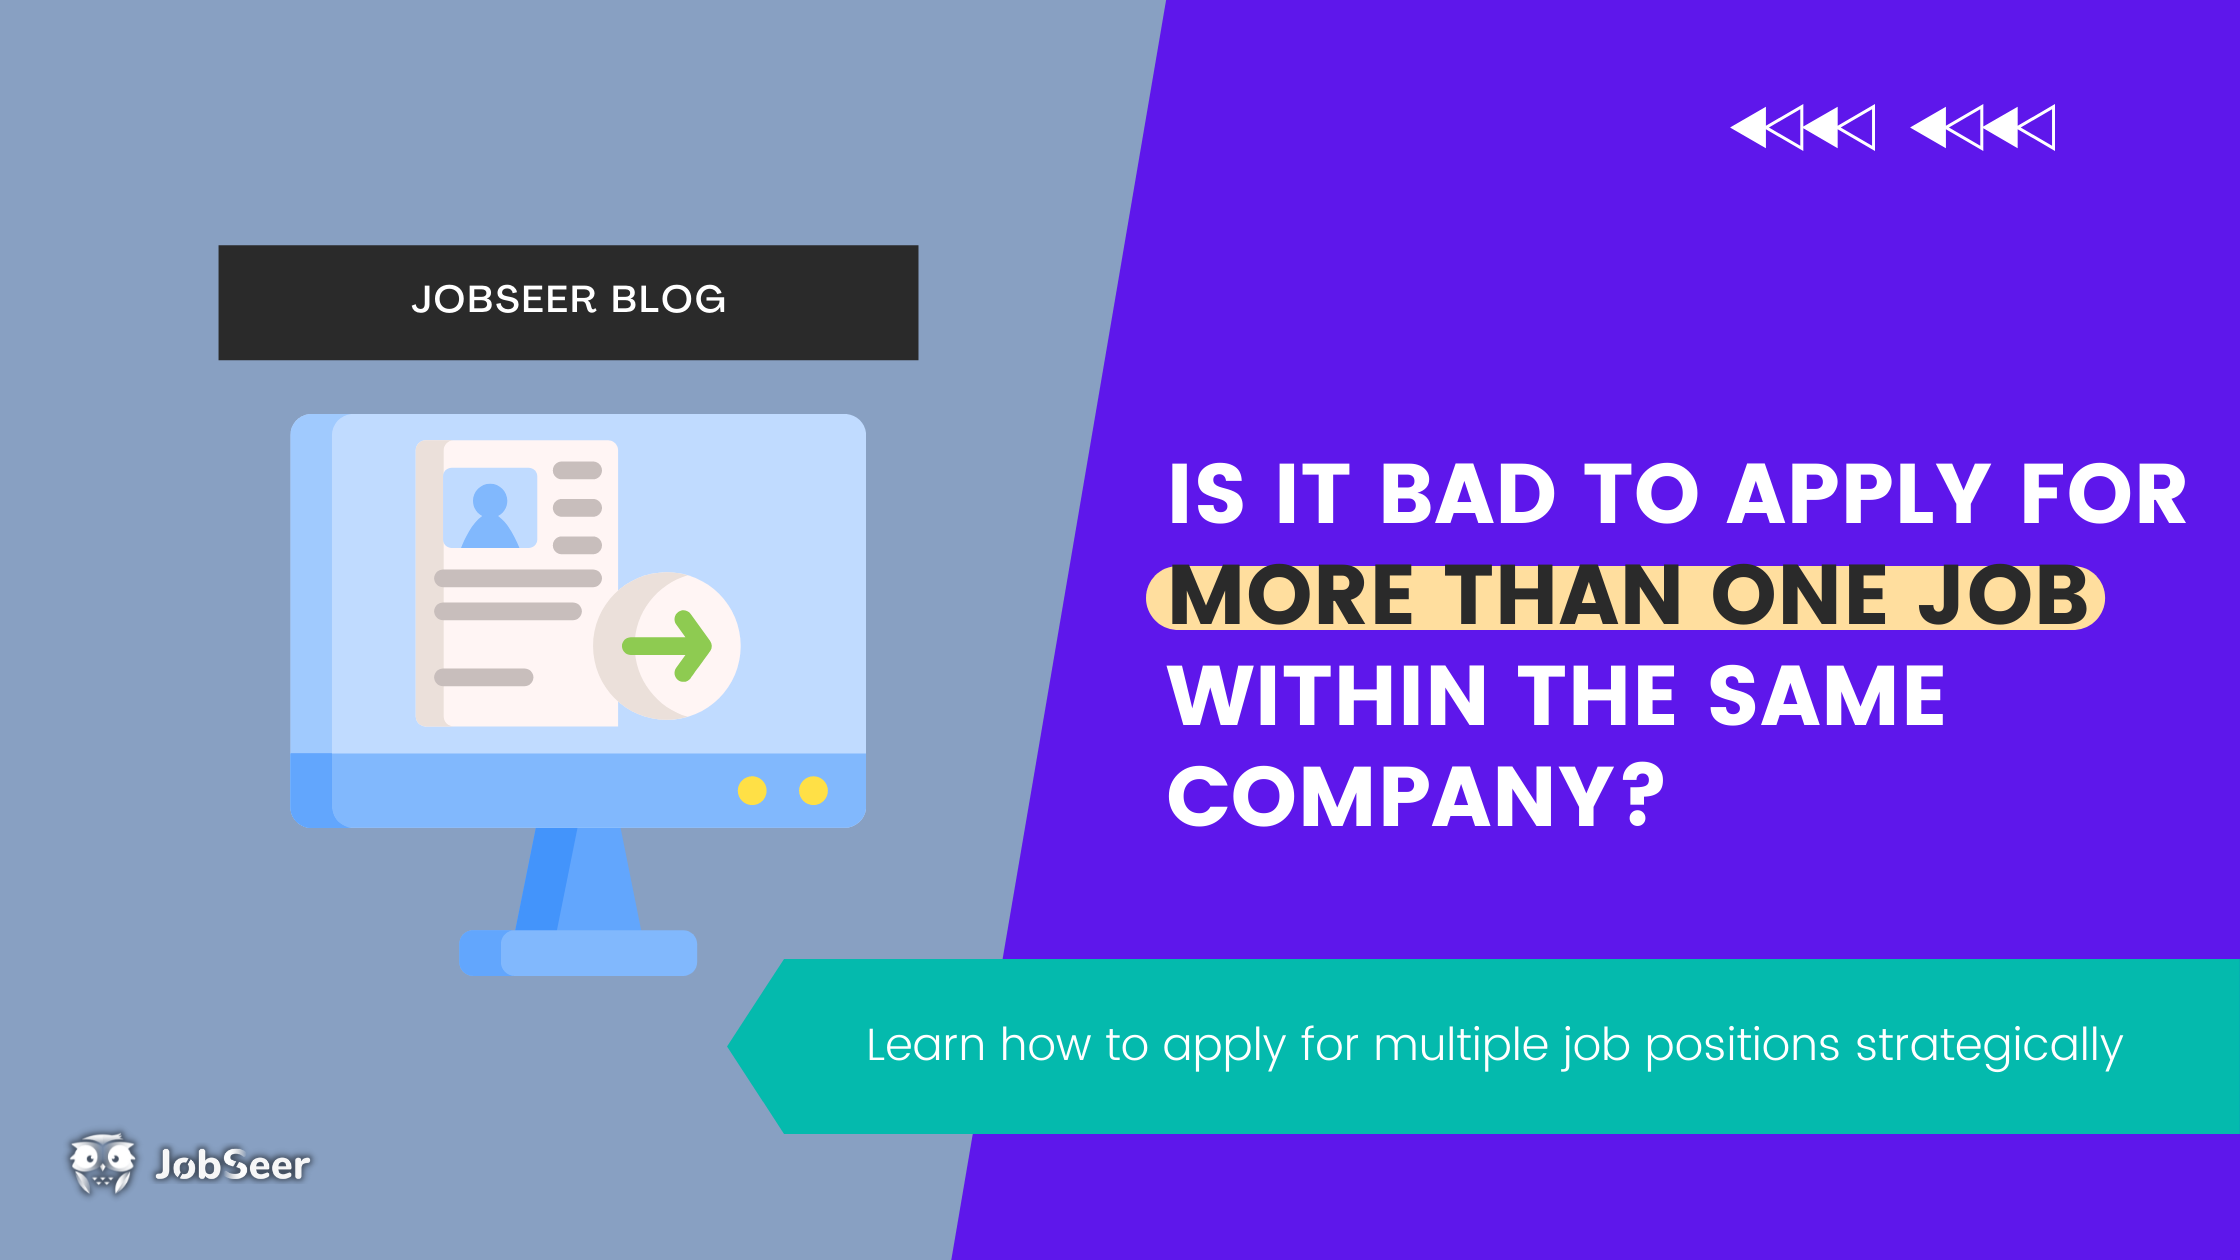 Is It Bad To Apply For More Than One Job Within The Same Company?